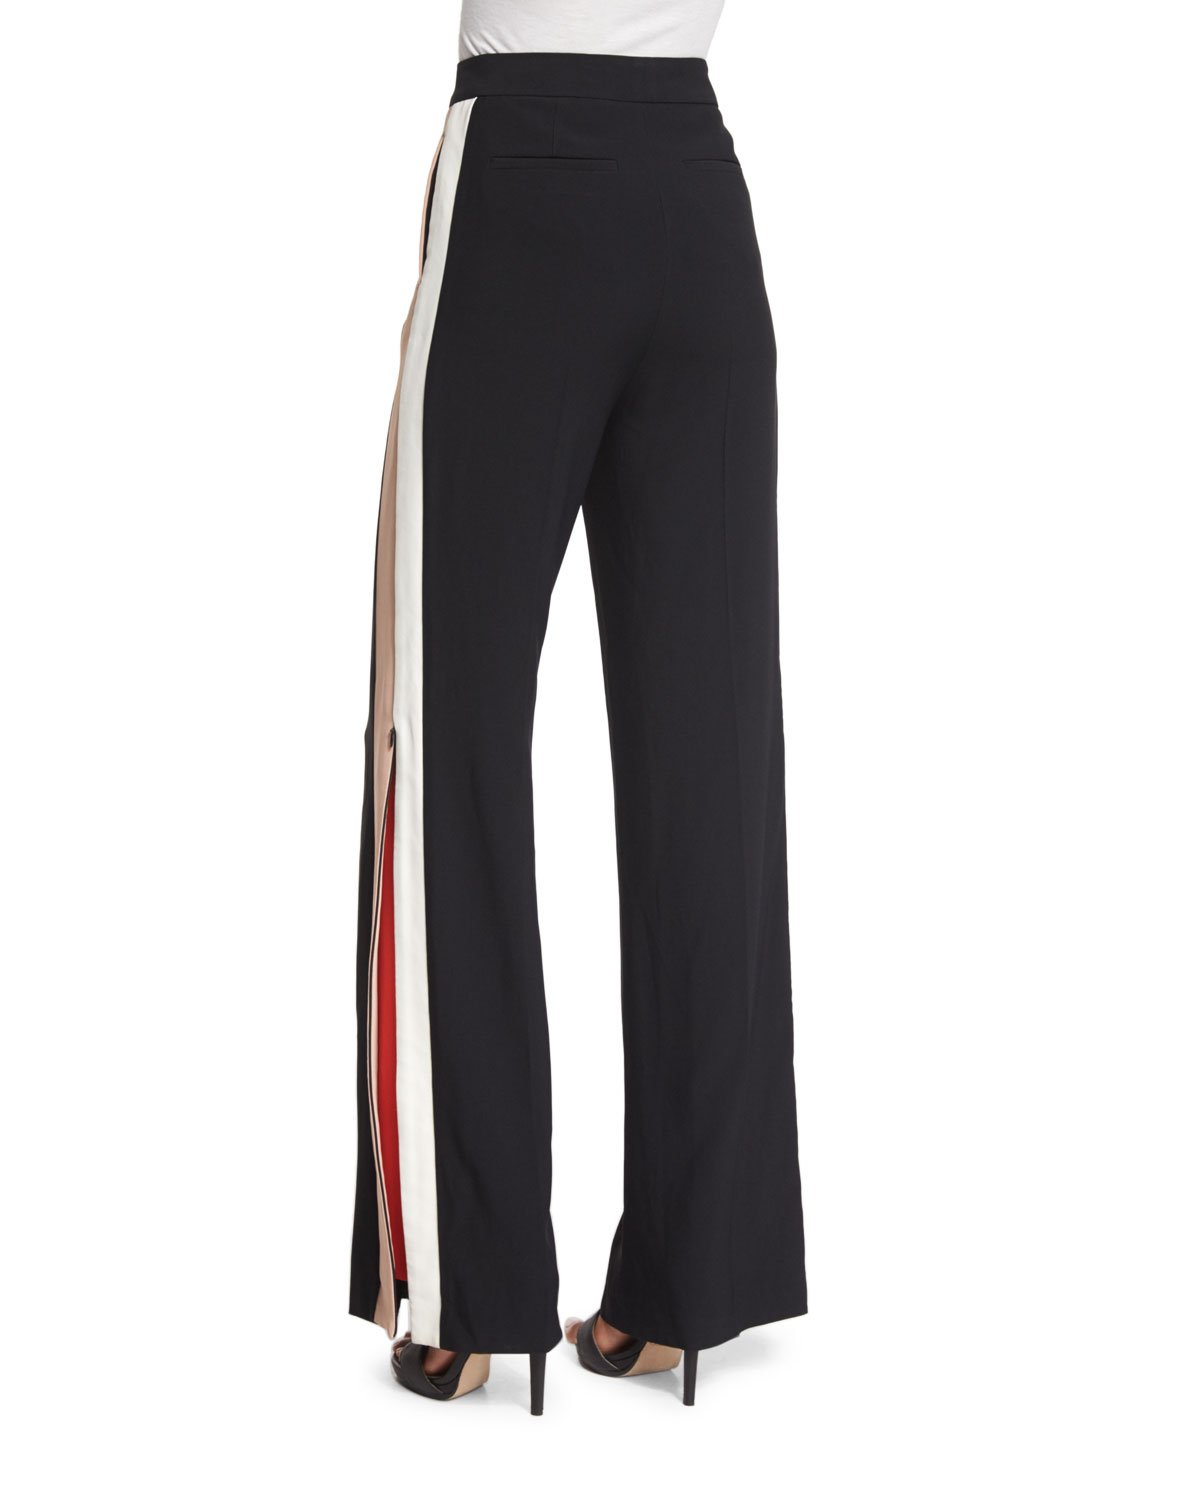 MSGM side logo stripe trousers Buy Cheap Clearance Outlet Locations Online Store Sale Online Discount Fake zmxMjV